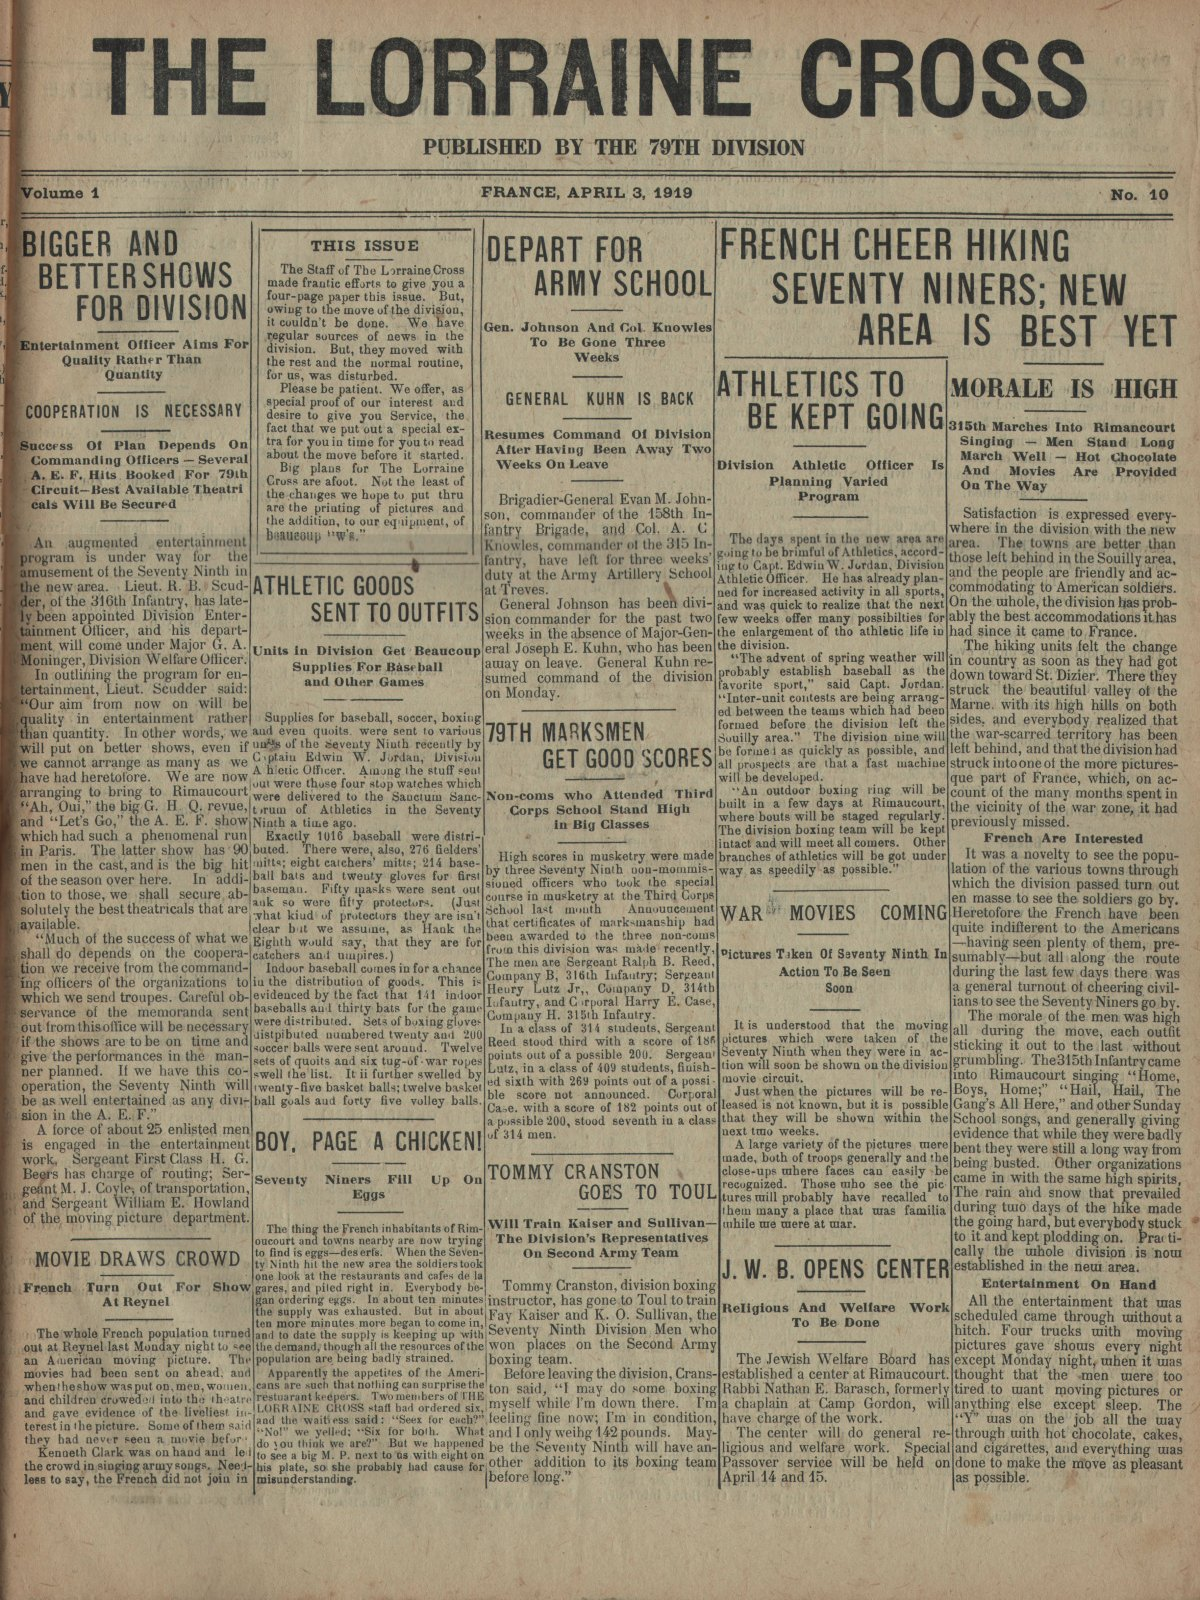 Lorraine Cross Newspaper Volume 1 Number 5 France April 3 1919 Page 1